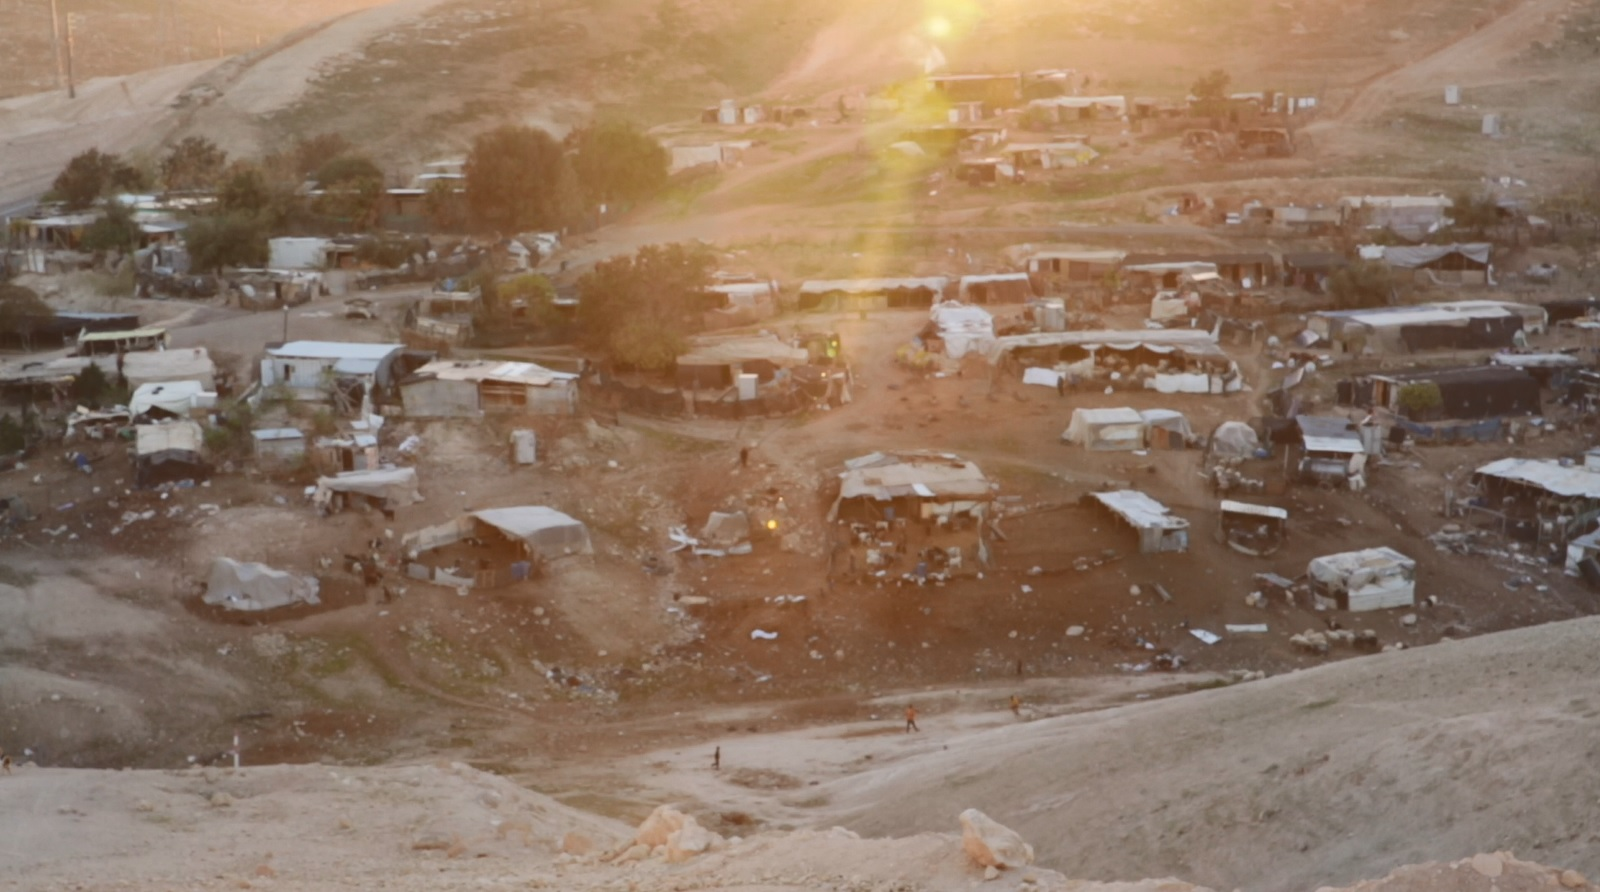 The Bedouin village at Al Khan Al-Ahmar